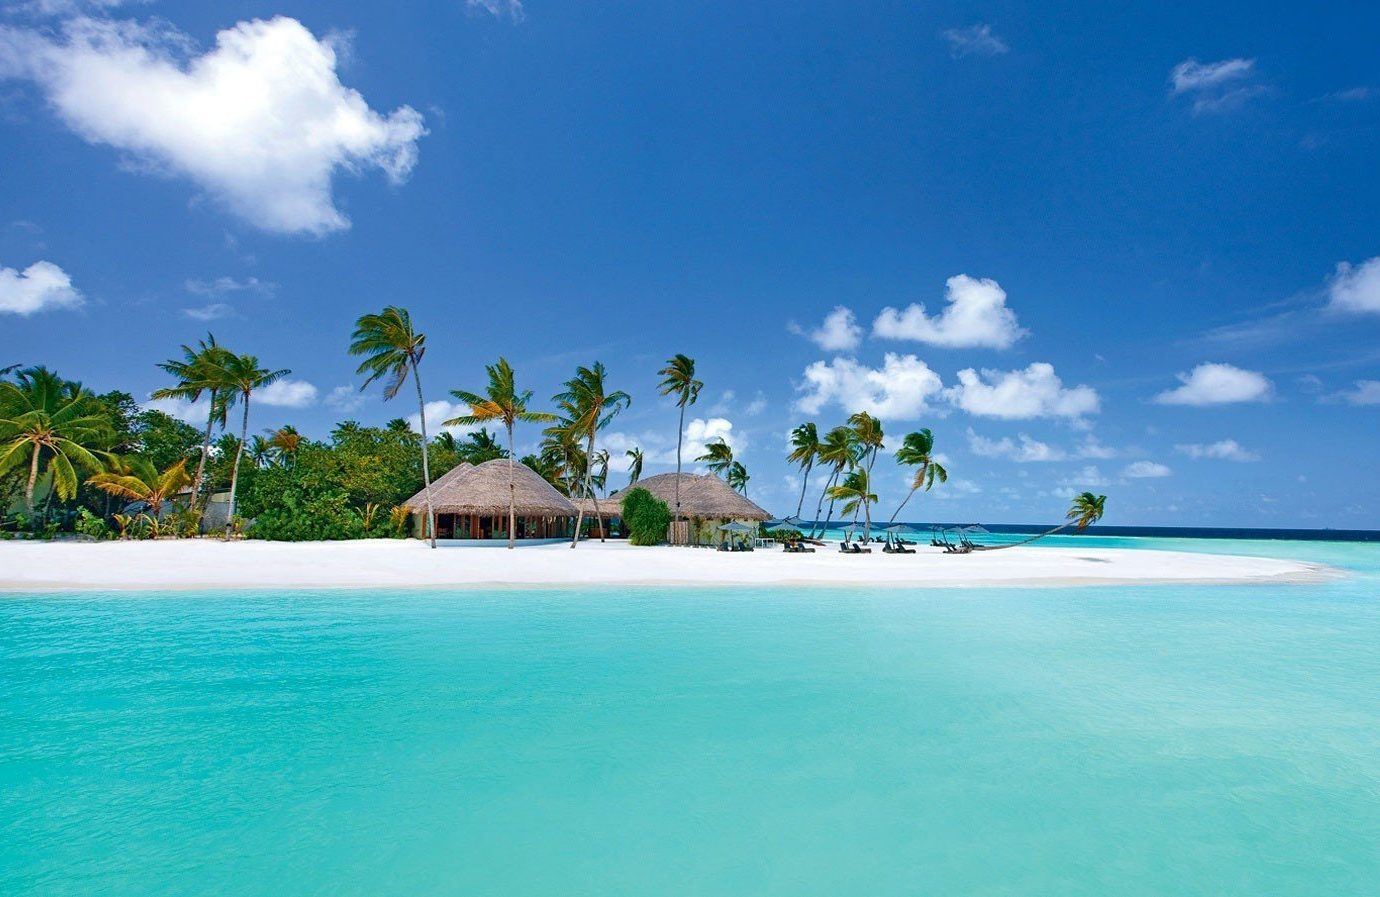 Hotels Trip Ideas sky water outdoor Nature landform caribbean geographical feature reef Sea Beach Ocean vacation blue Island Lagoon atoll islet bay tropics shore archipelago swimming pool cape cay Resort clouds swimming day